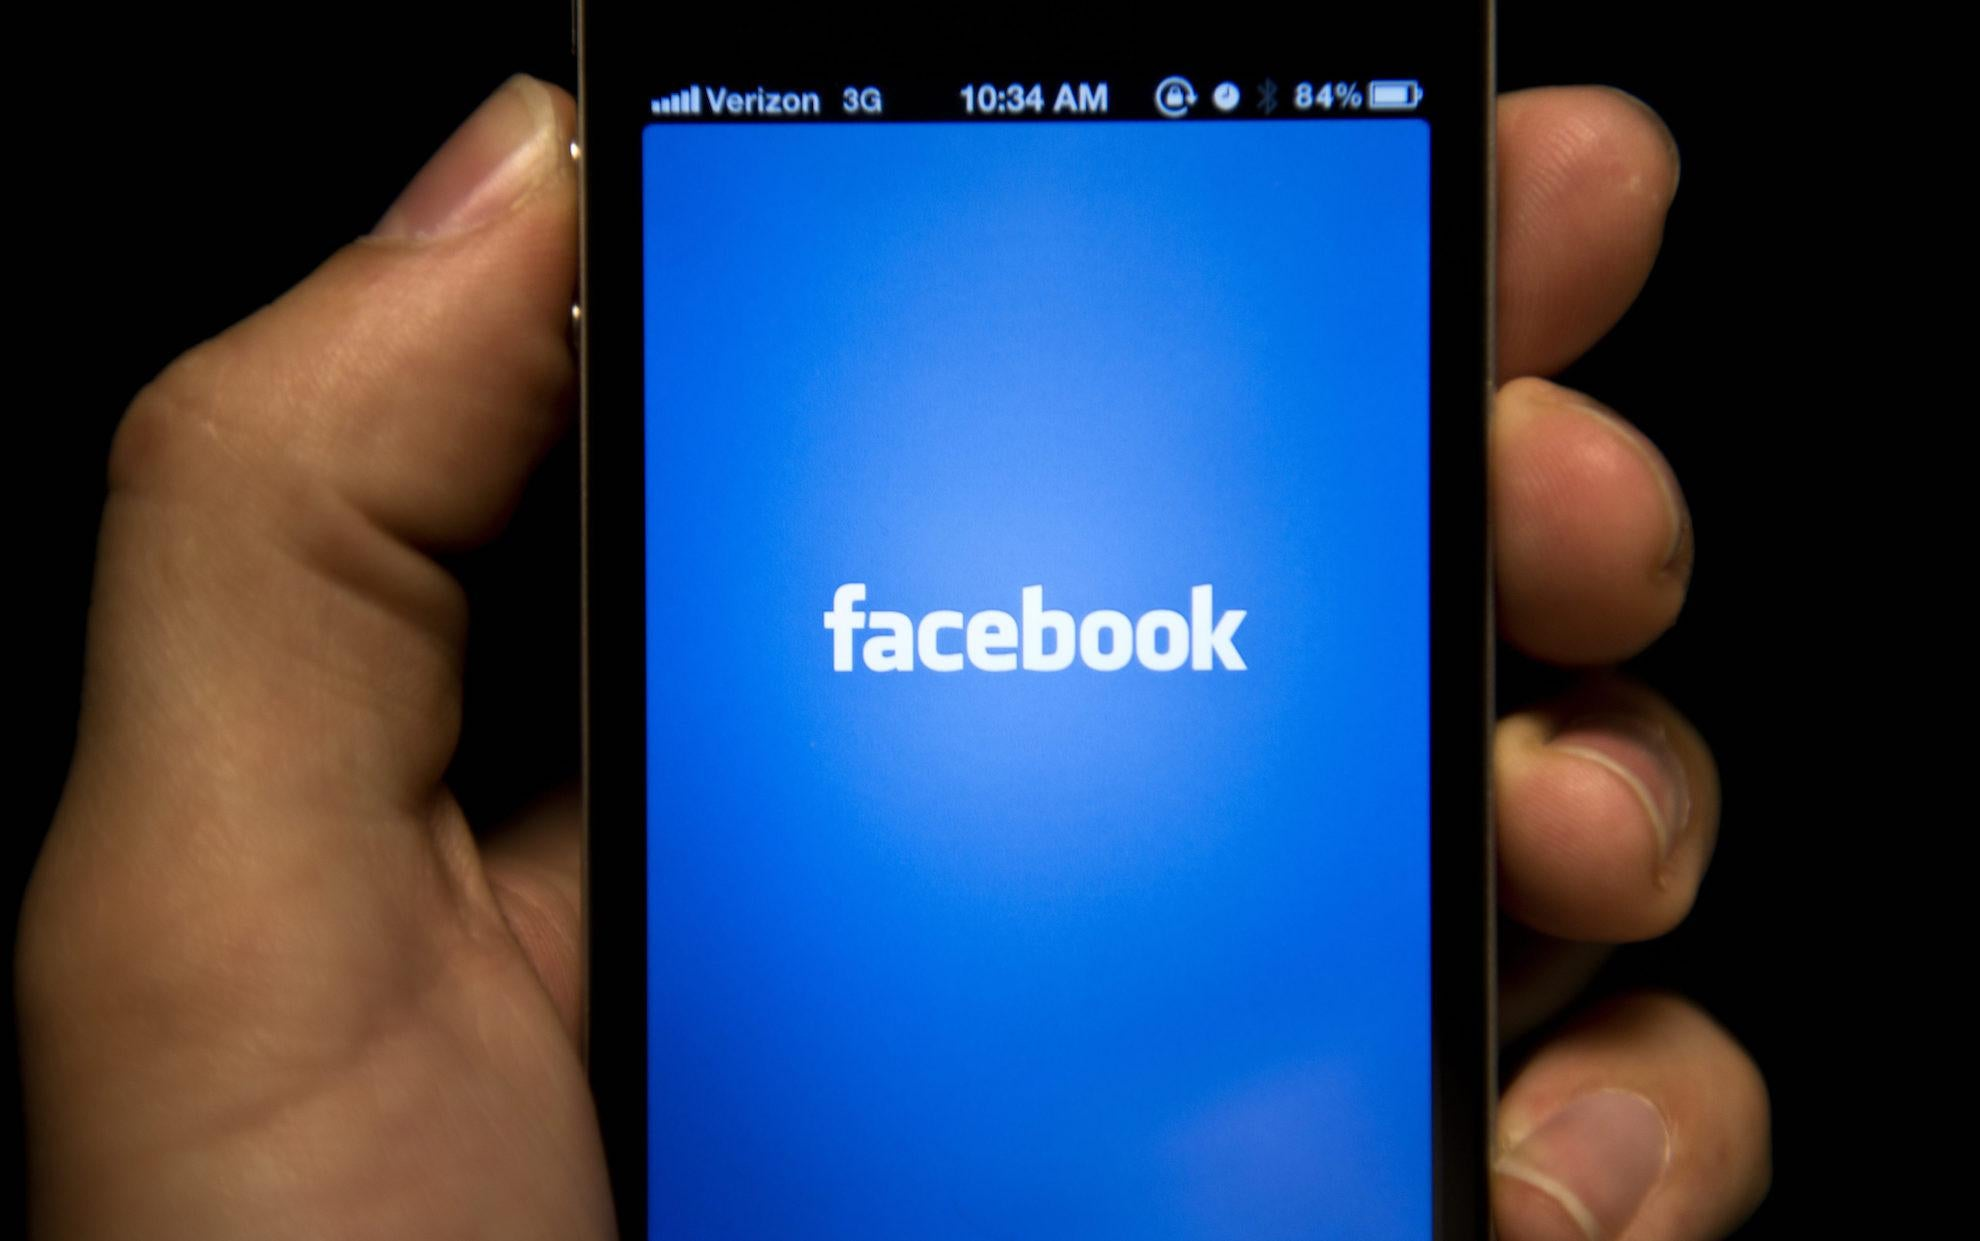 Facebook is Growing as a Campaign News Source